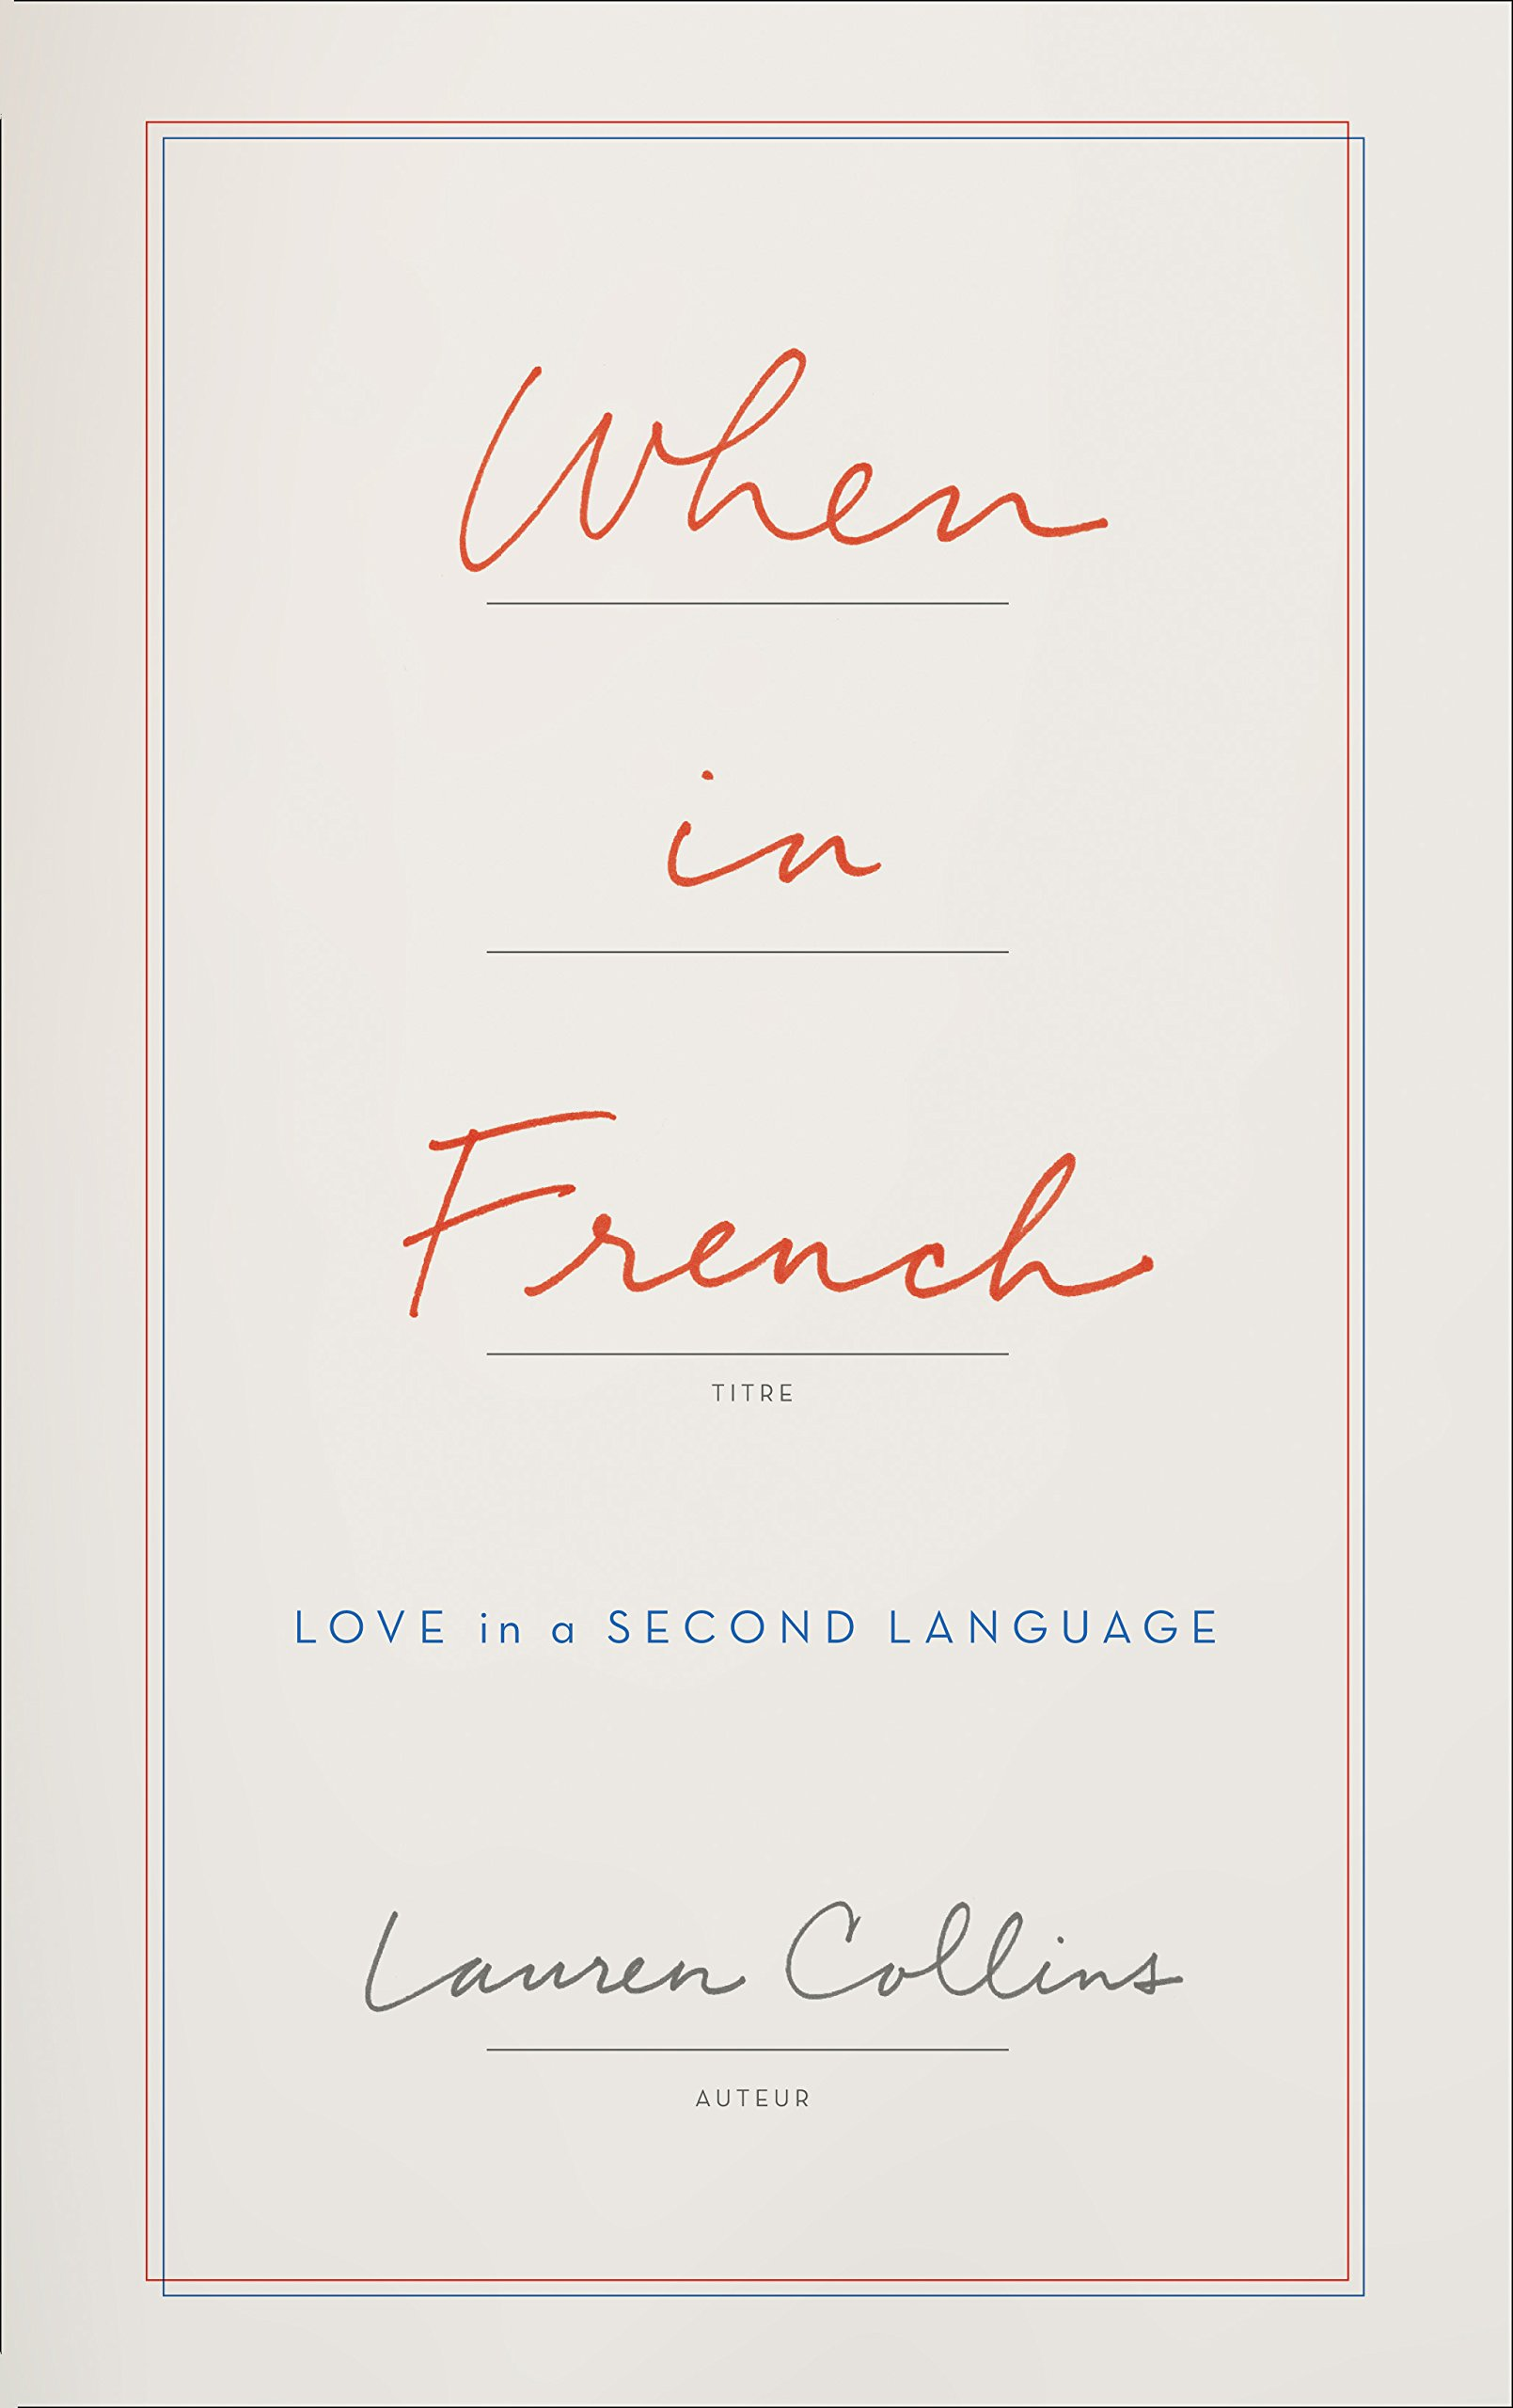 When in French: Love in a Second Language by Lauren Collins, published by Fourth Estate